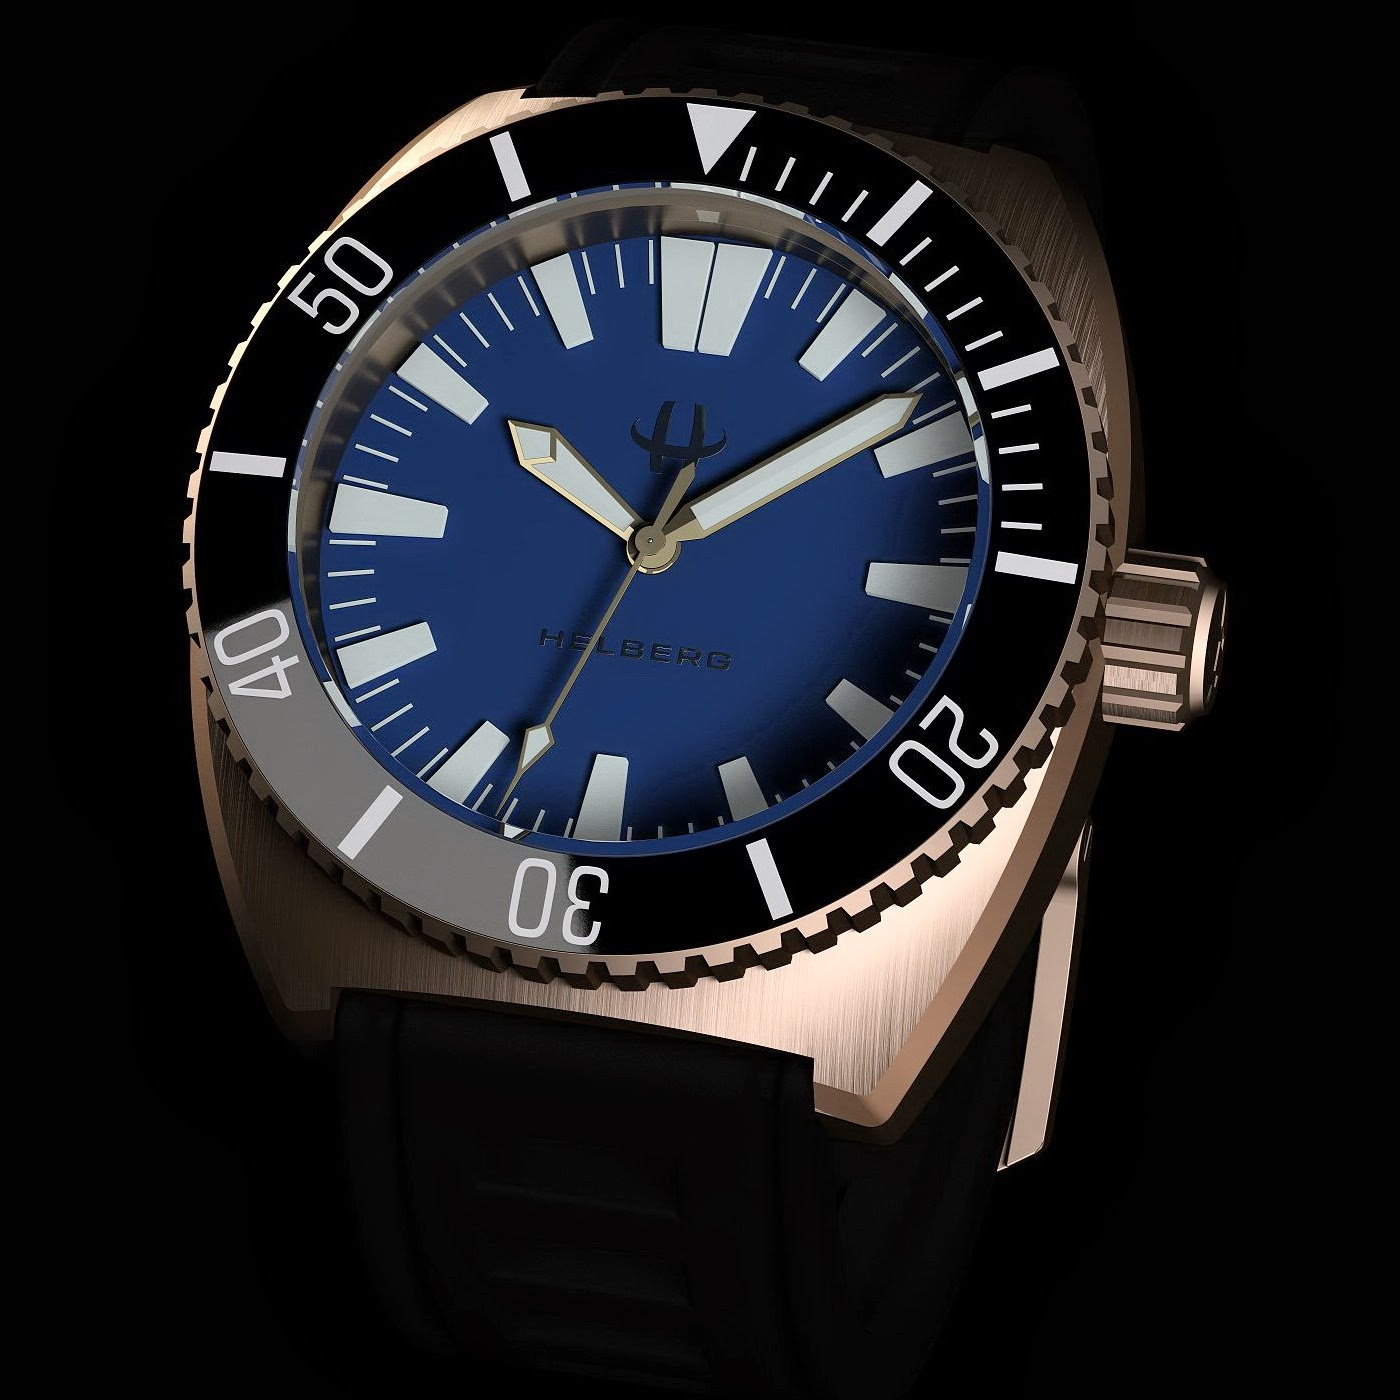 watches viewtopic comments the watch page photos image dive orca torpedo forum